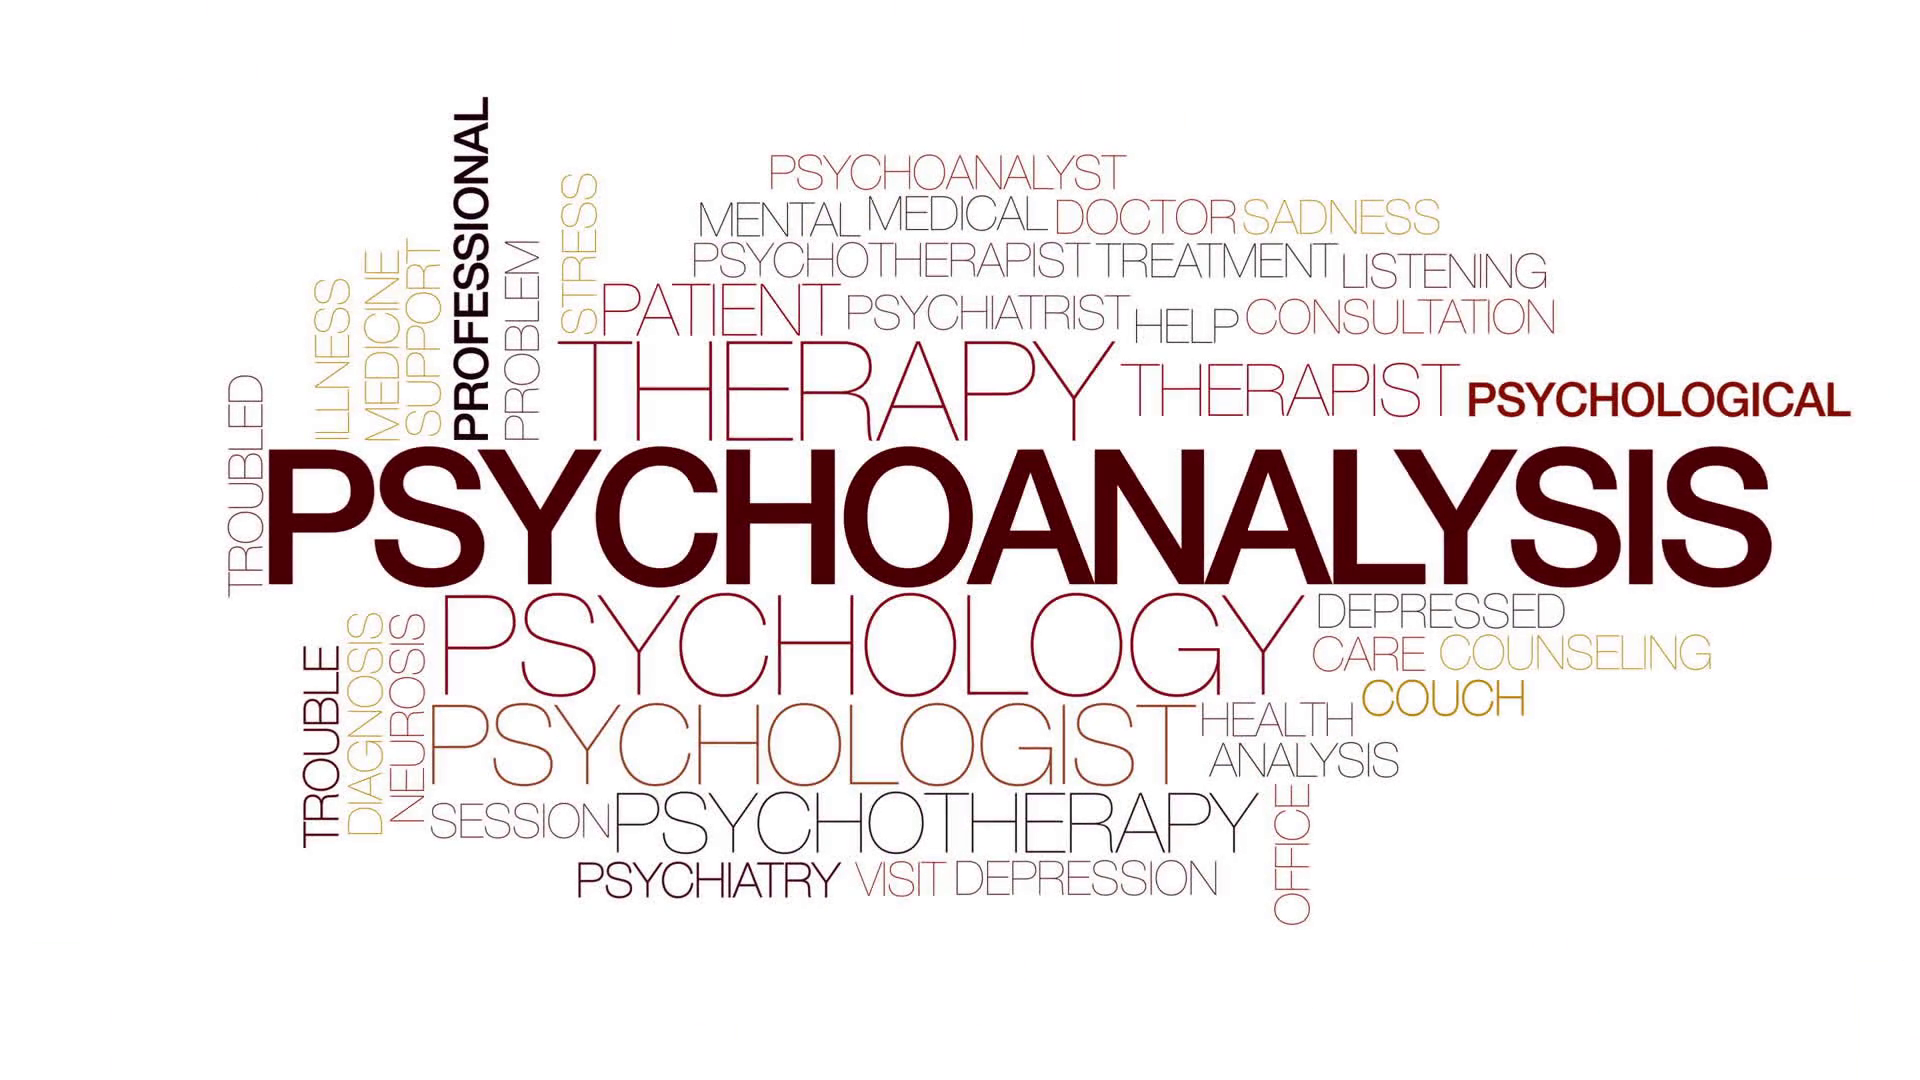 a description of classical psychoanalysis during a typical therapy session Psychoanalysis seeks to understand therapy helps to identify and relate your psychoanalyst may insert themselves into the session by commenting on a.